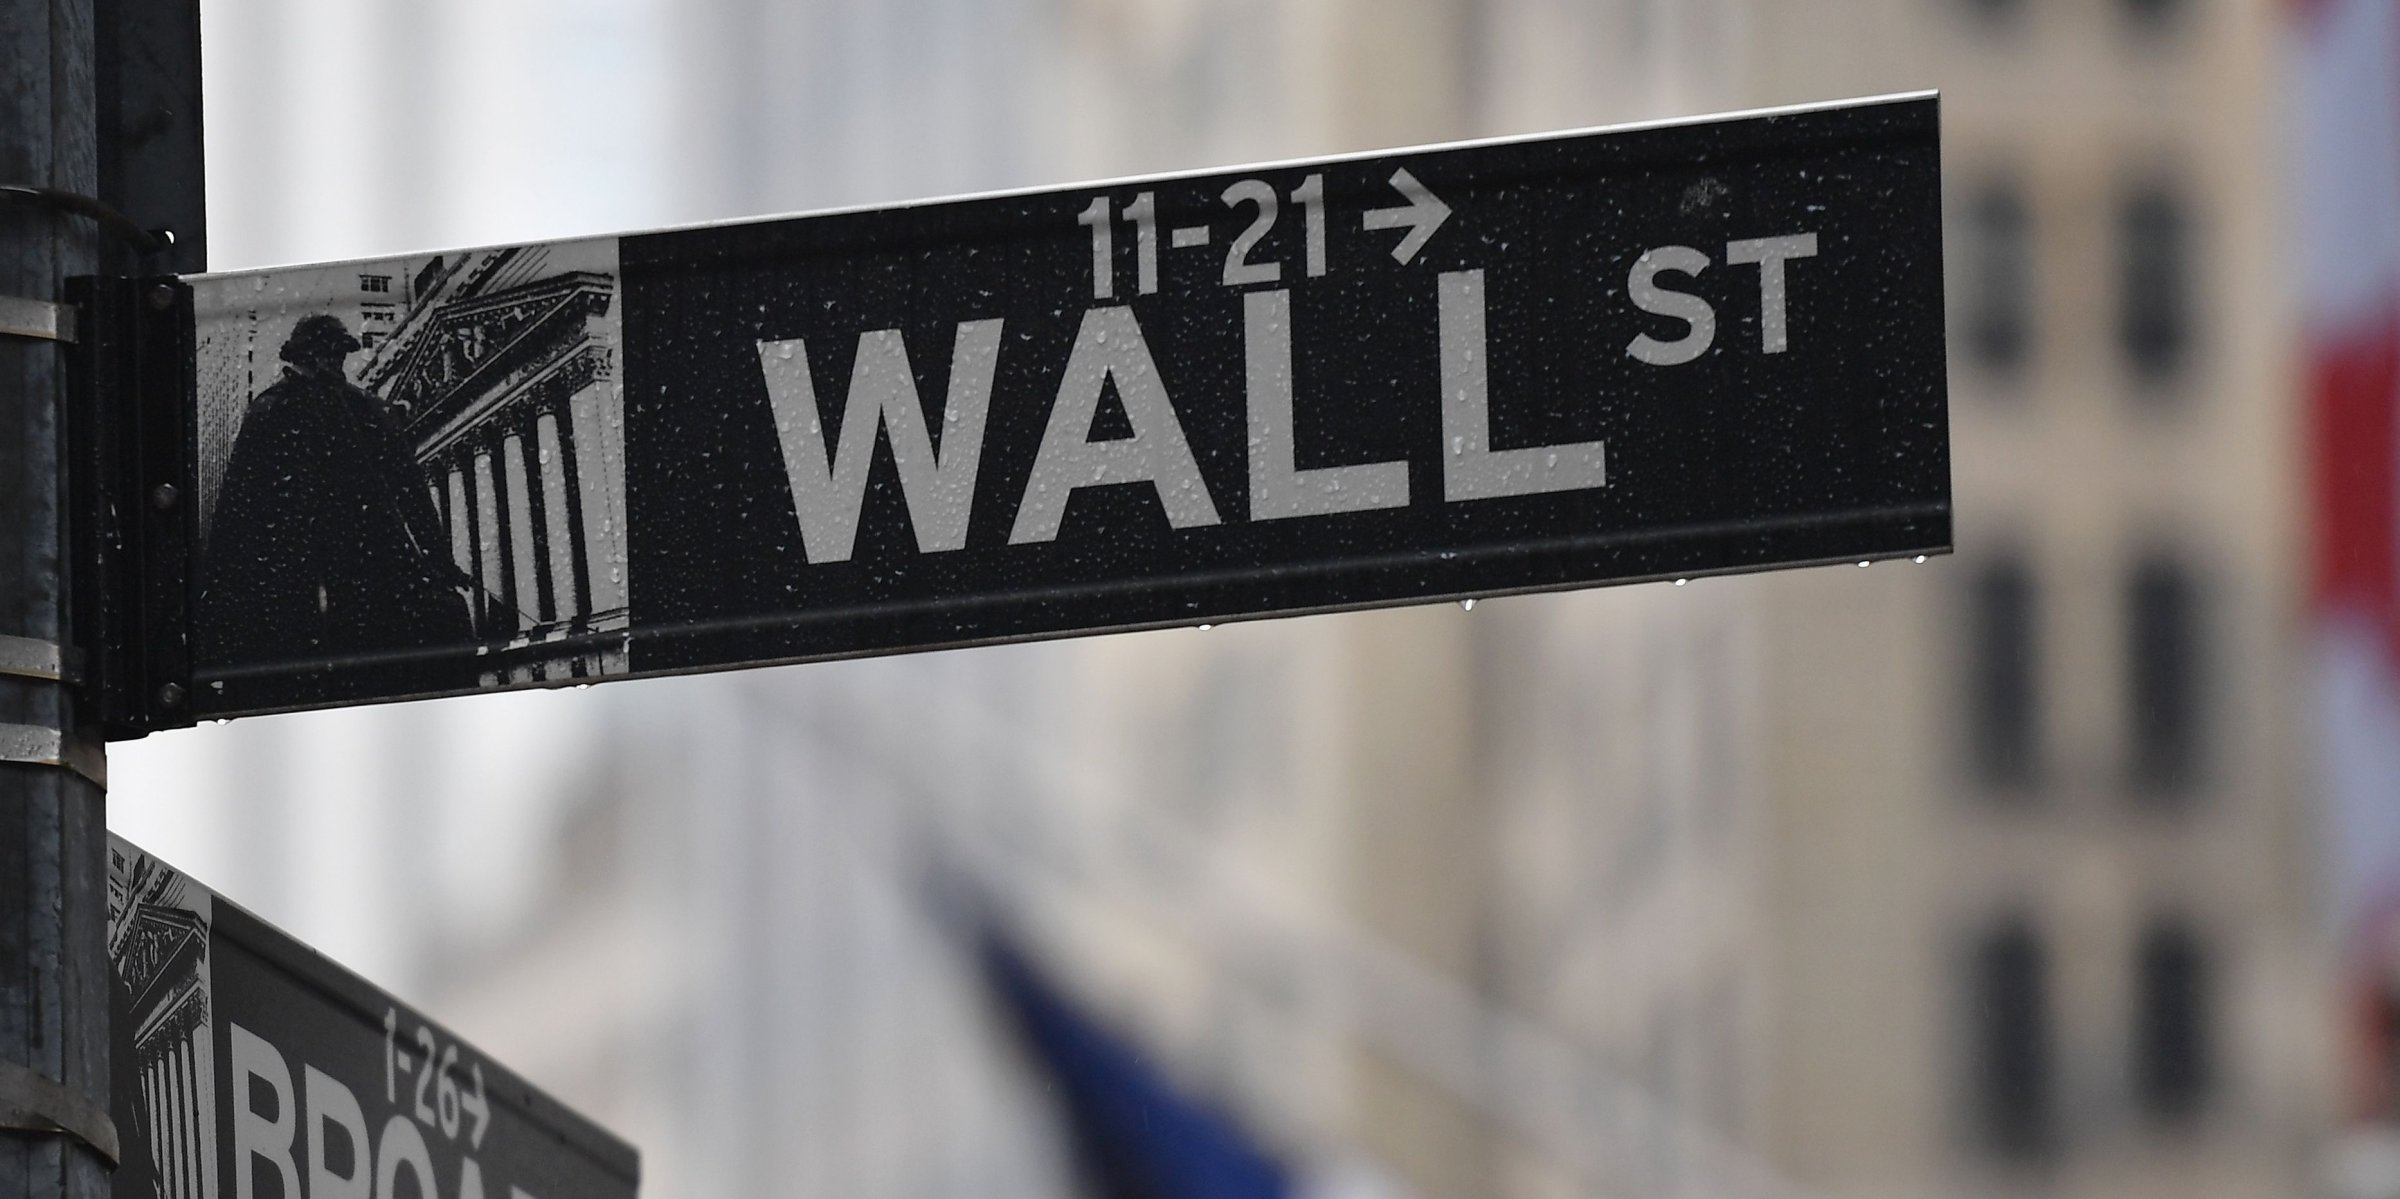 Dow has biggest rally since 1933, surging 11.4% on coronavirus stimulus hopes | Daily Sabah